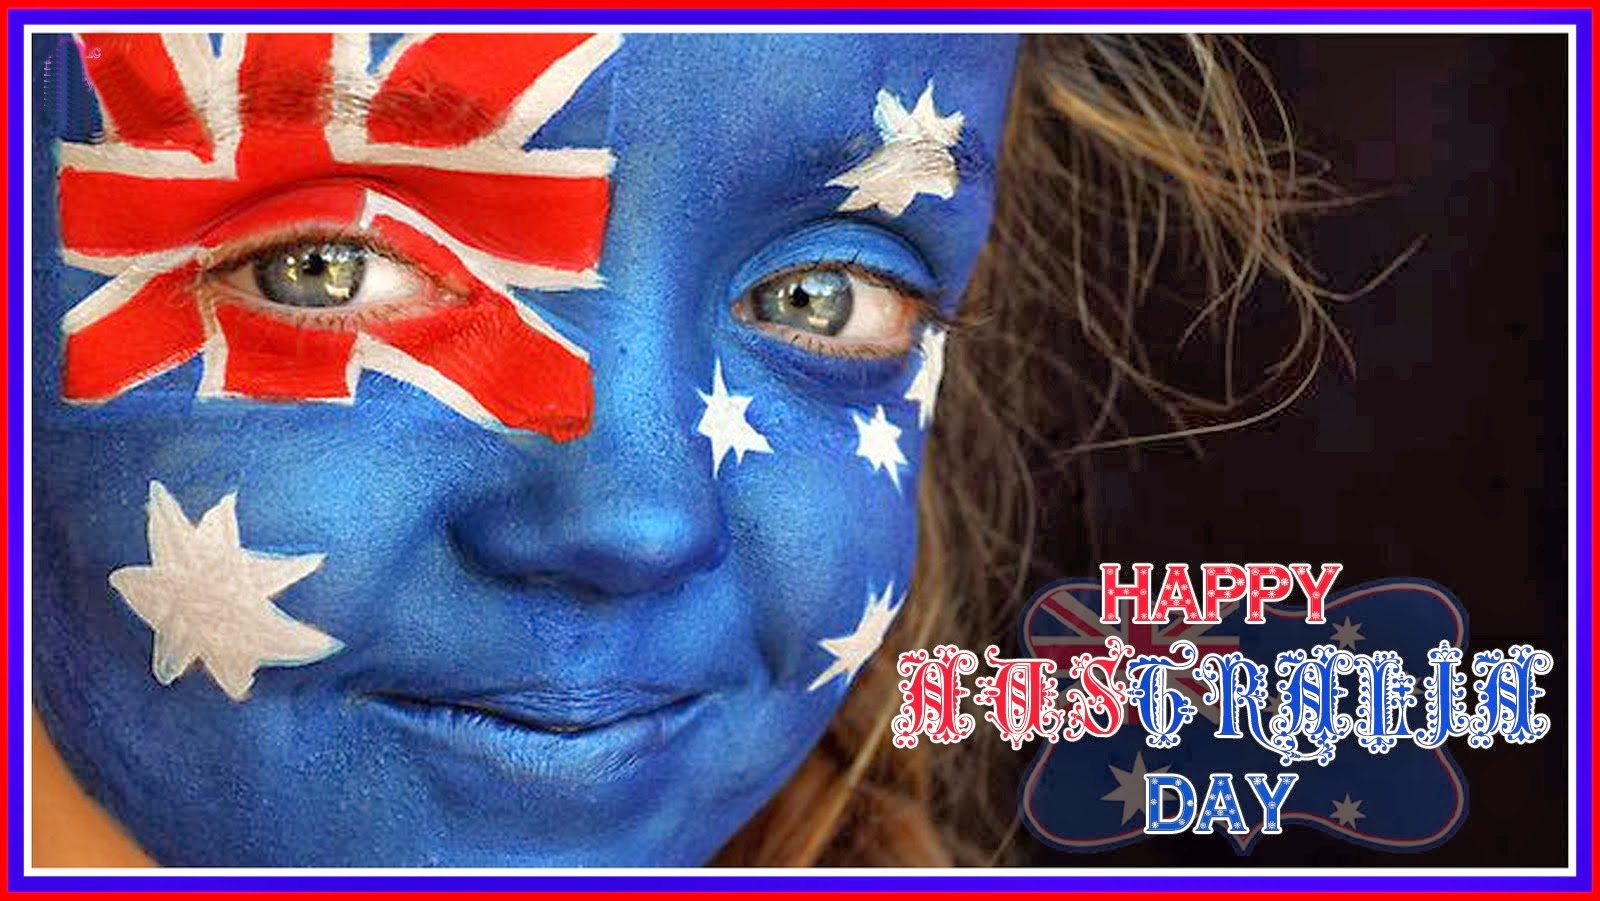 Australia Day Wallpaper 71 images in Collection Page 1 1600x901